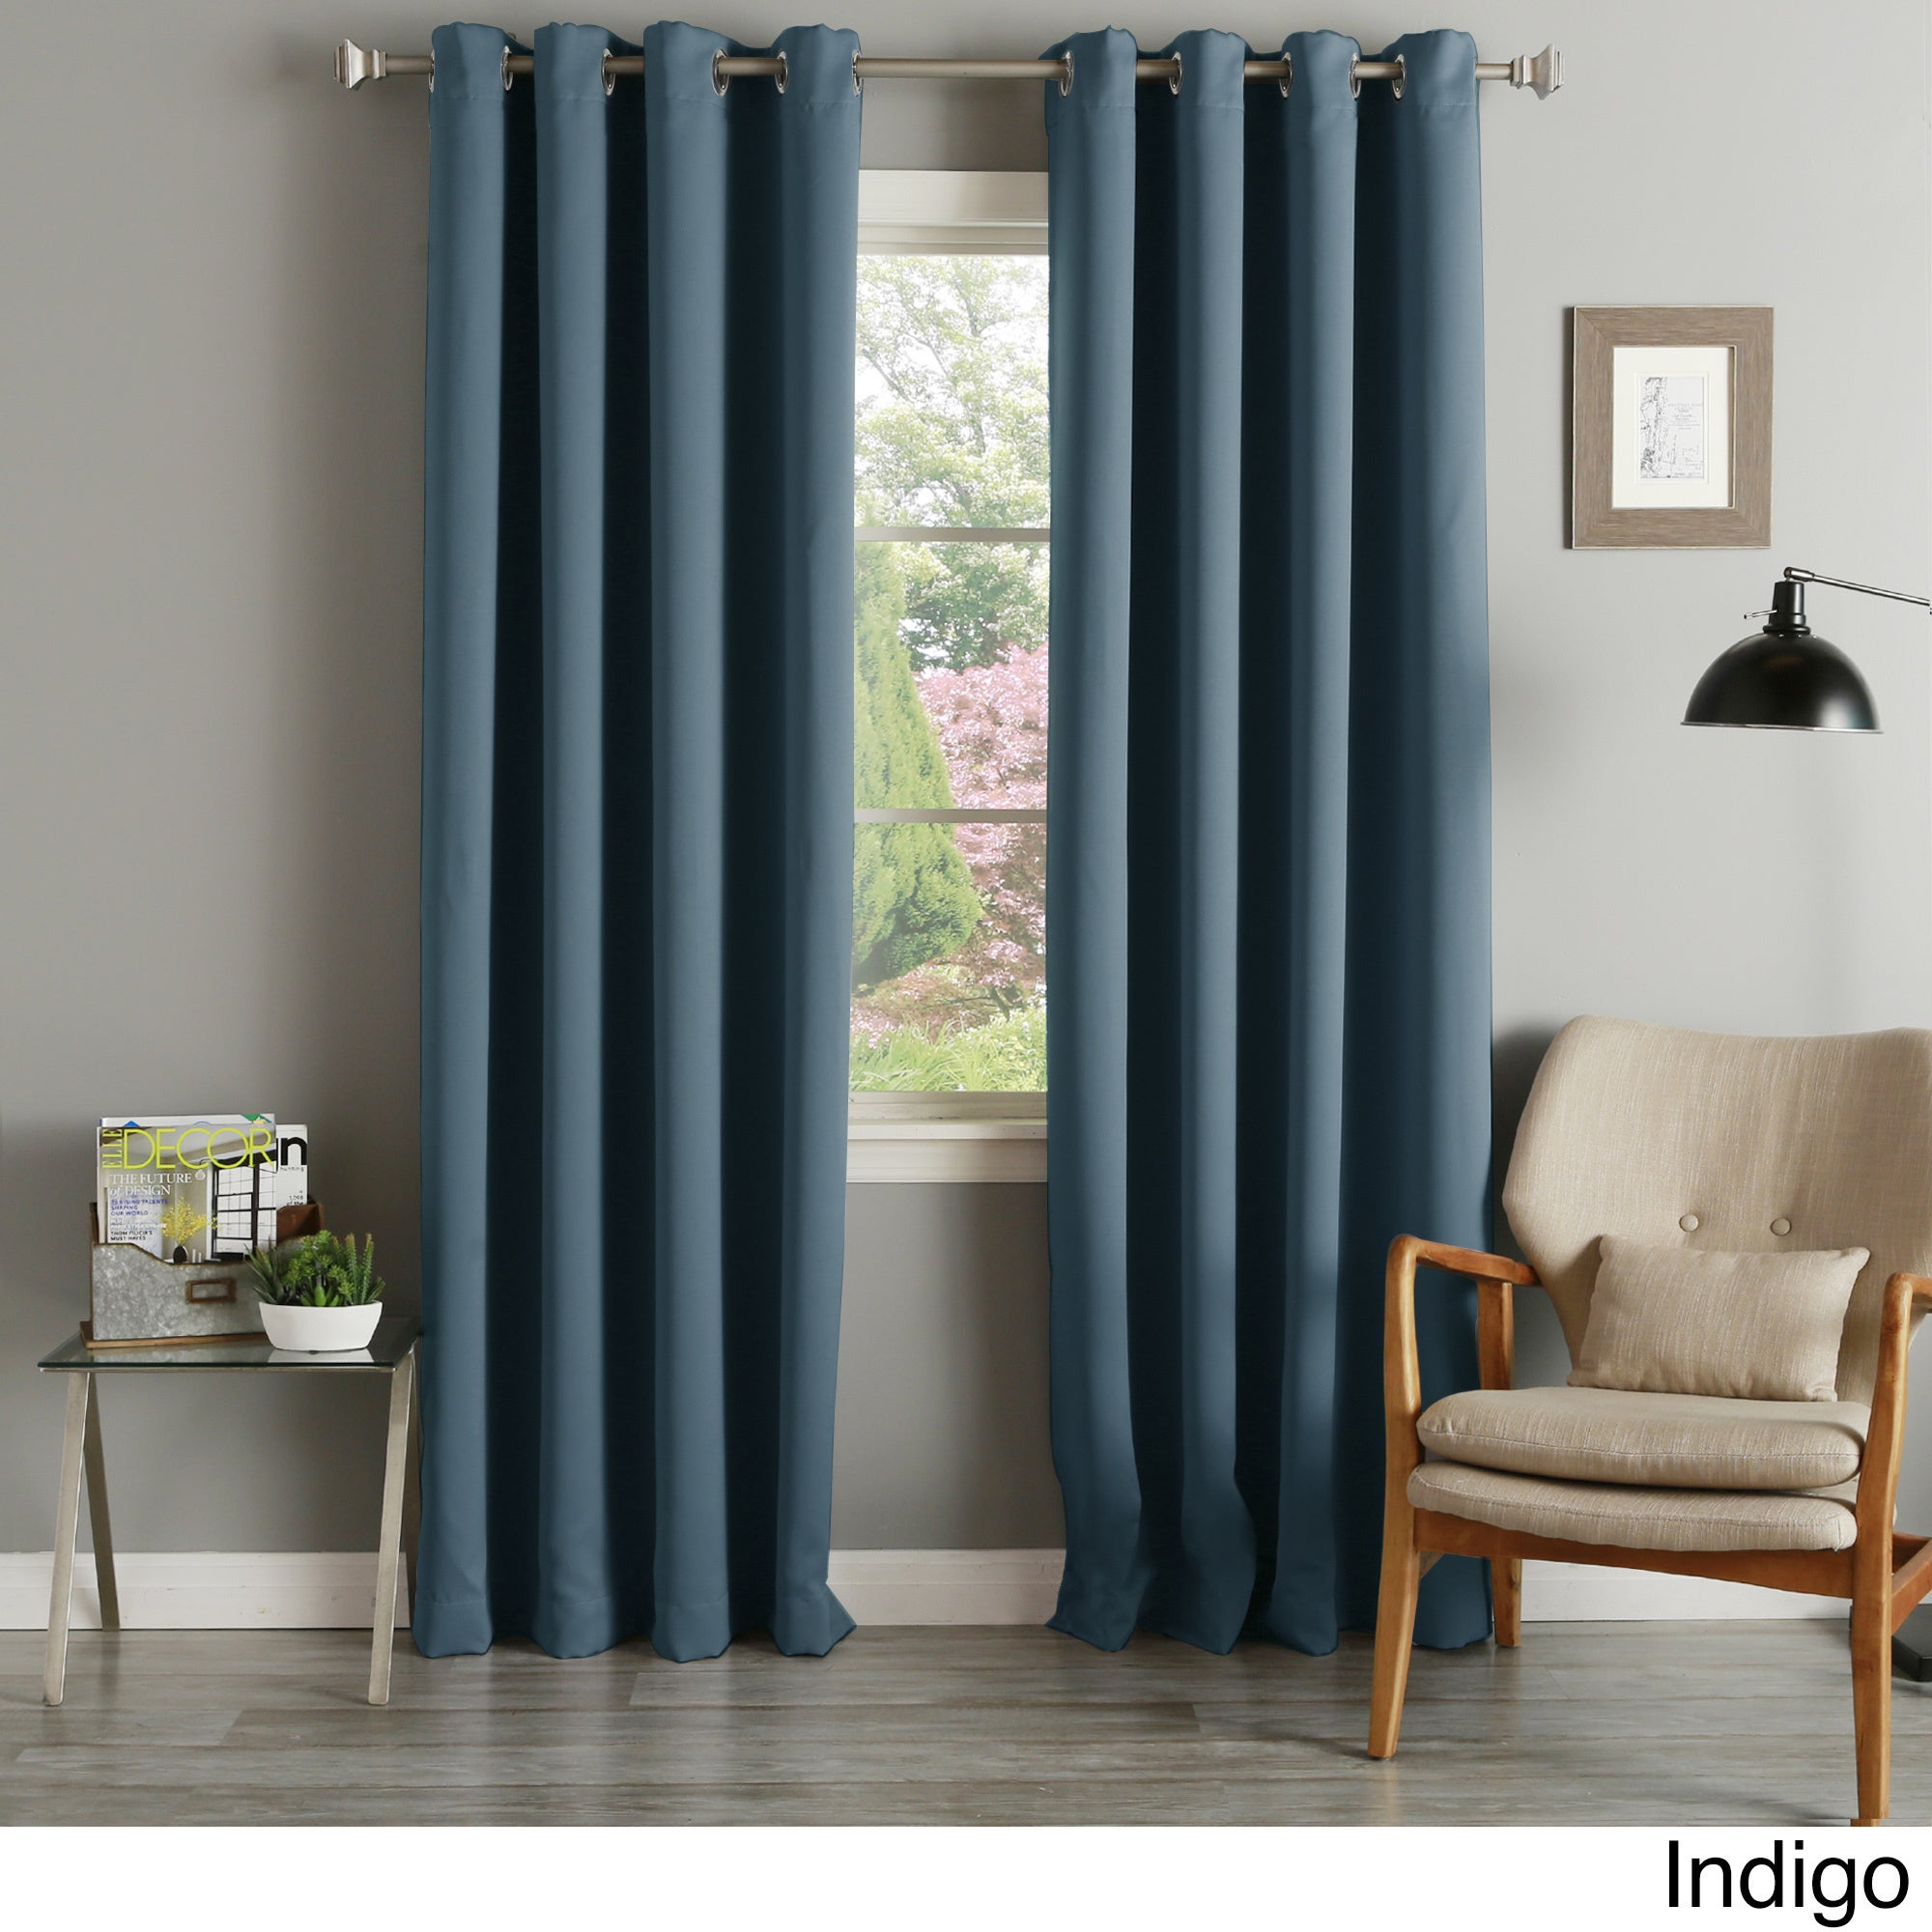 Aurora Home Silvertone Grommet Thermal Insulated Blackout Curtain Panel Pair Throughout Insulated Grommet Blackout Curtain Panel Pairs (View 2 of 20)